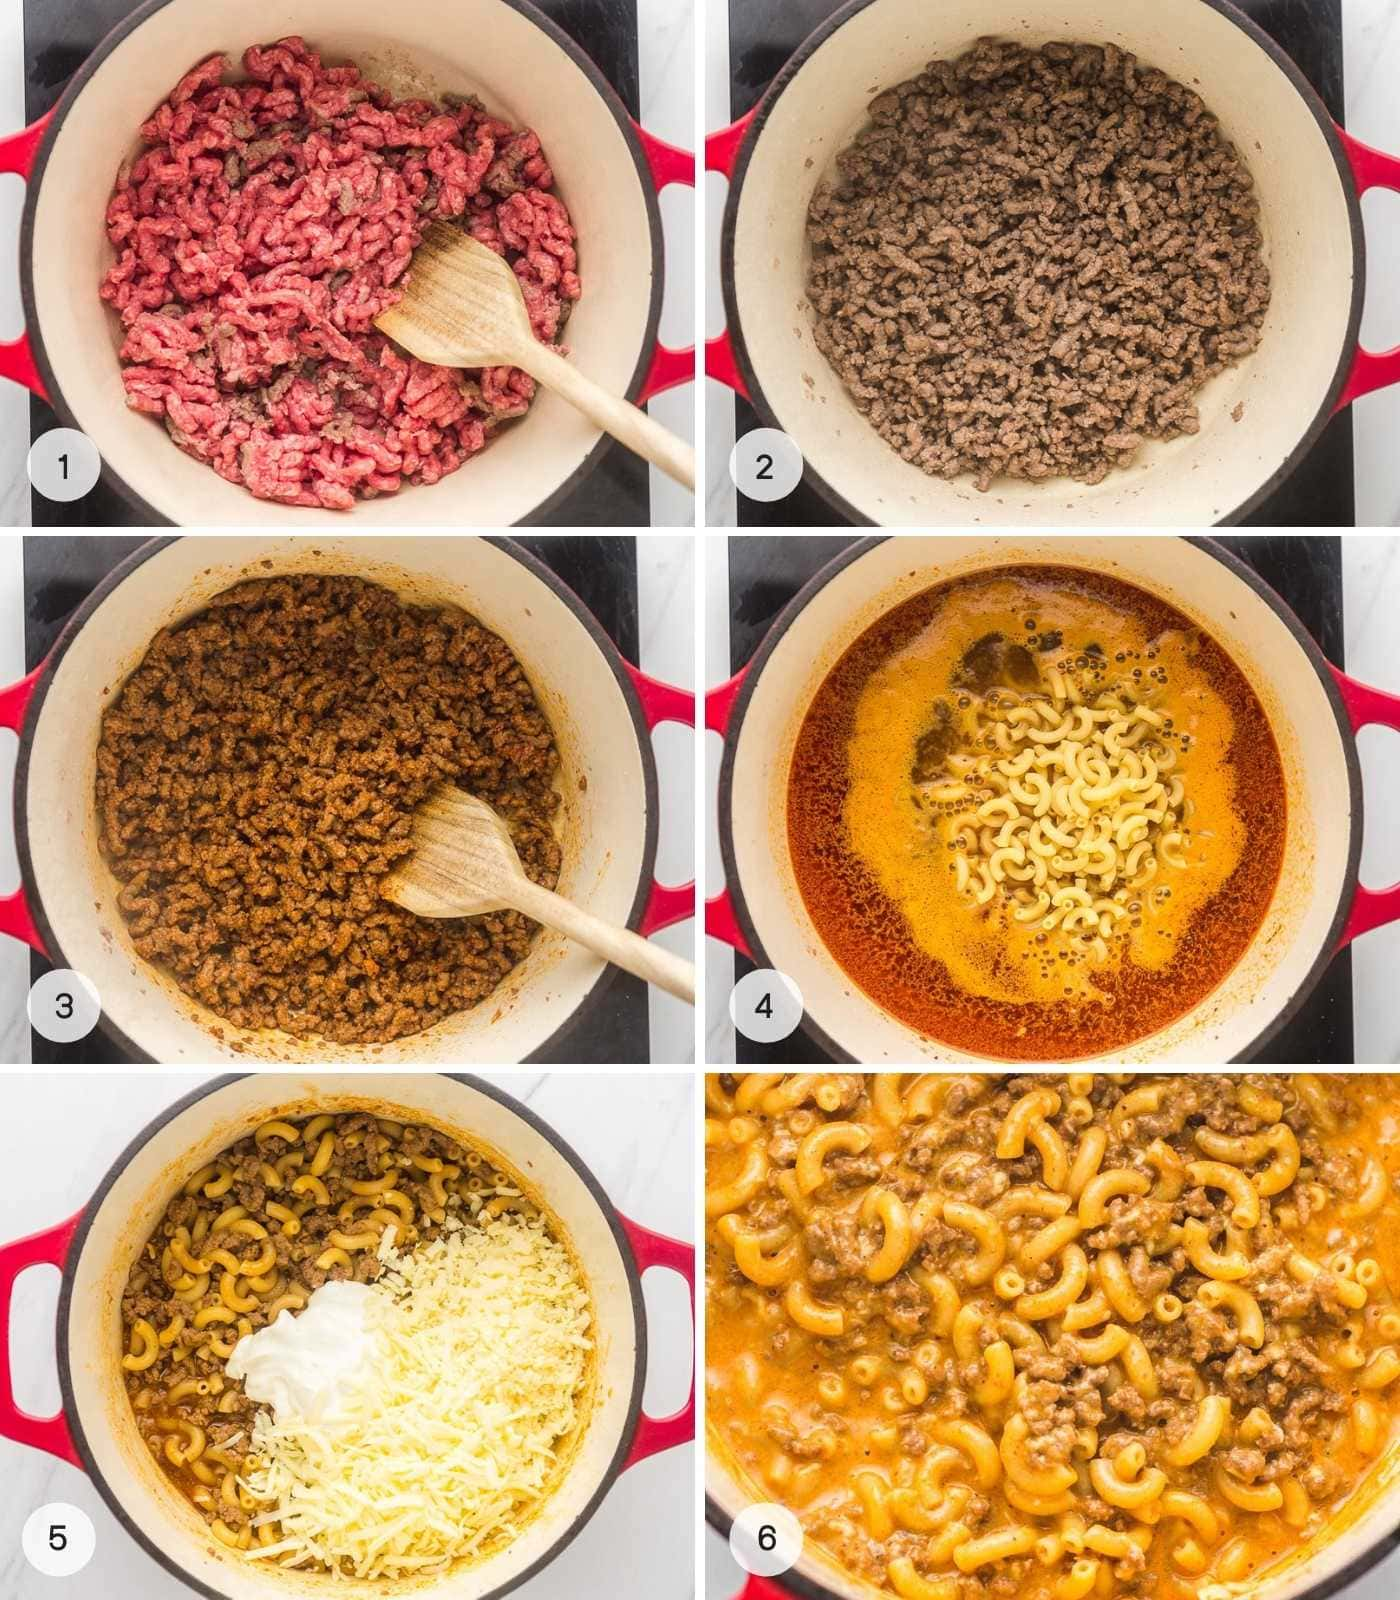 A collage with 6 images showing how hamburger helper is made.